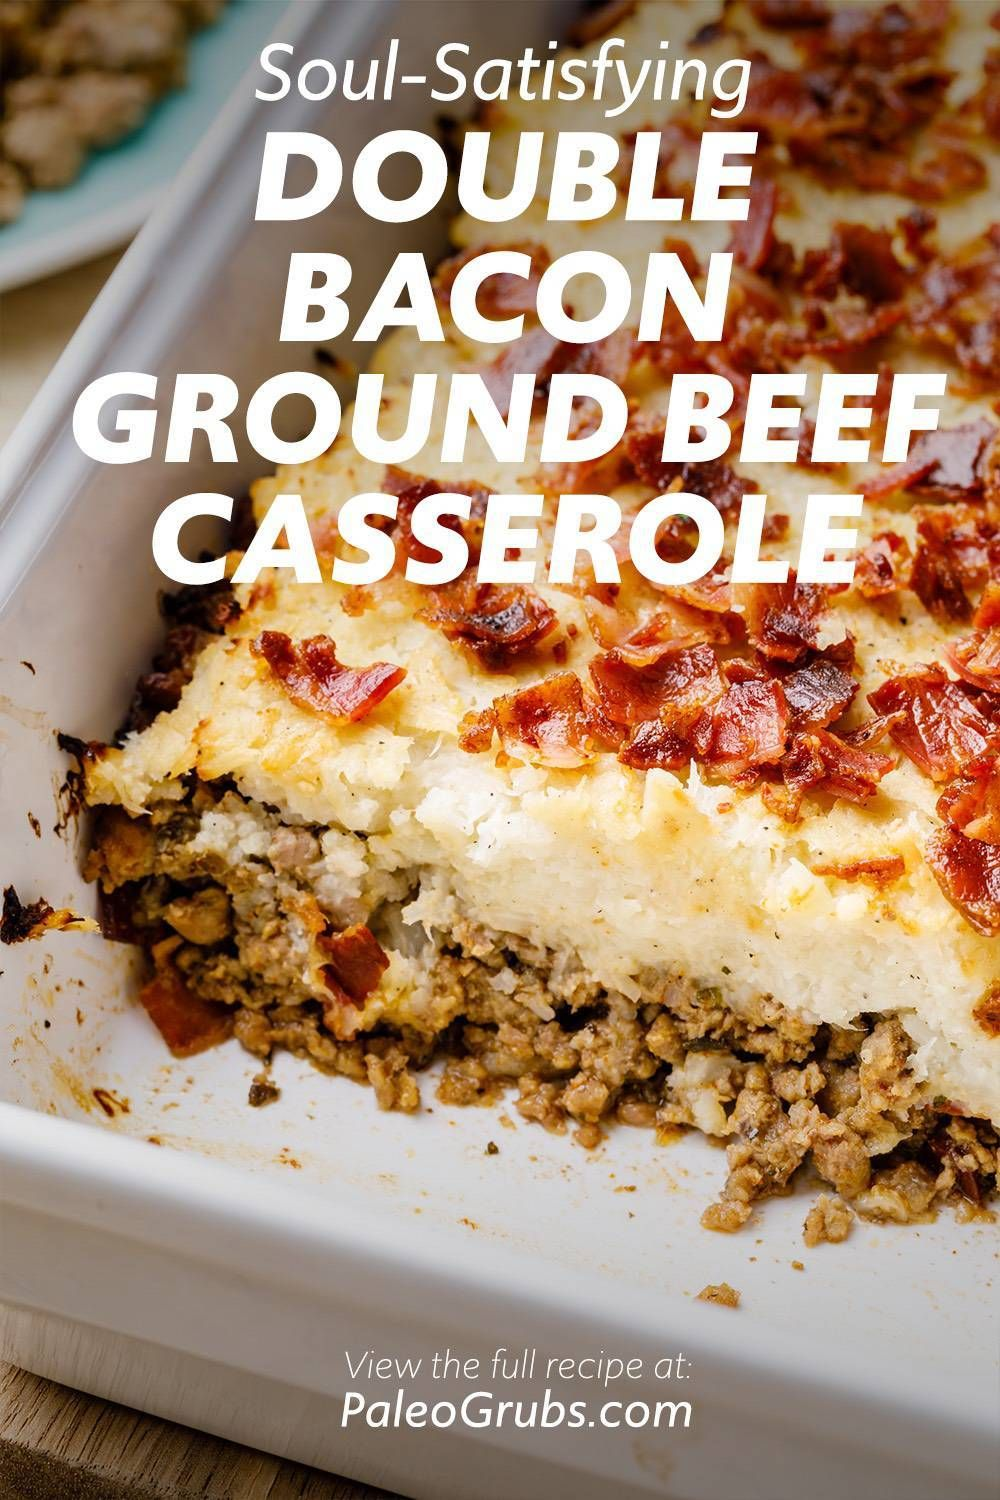 Double Bacon Ground Beef Paleo Casserole Low Carb In 2020 Paleo Ground Beef Paleo Casserole Ground Beef Casserole